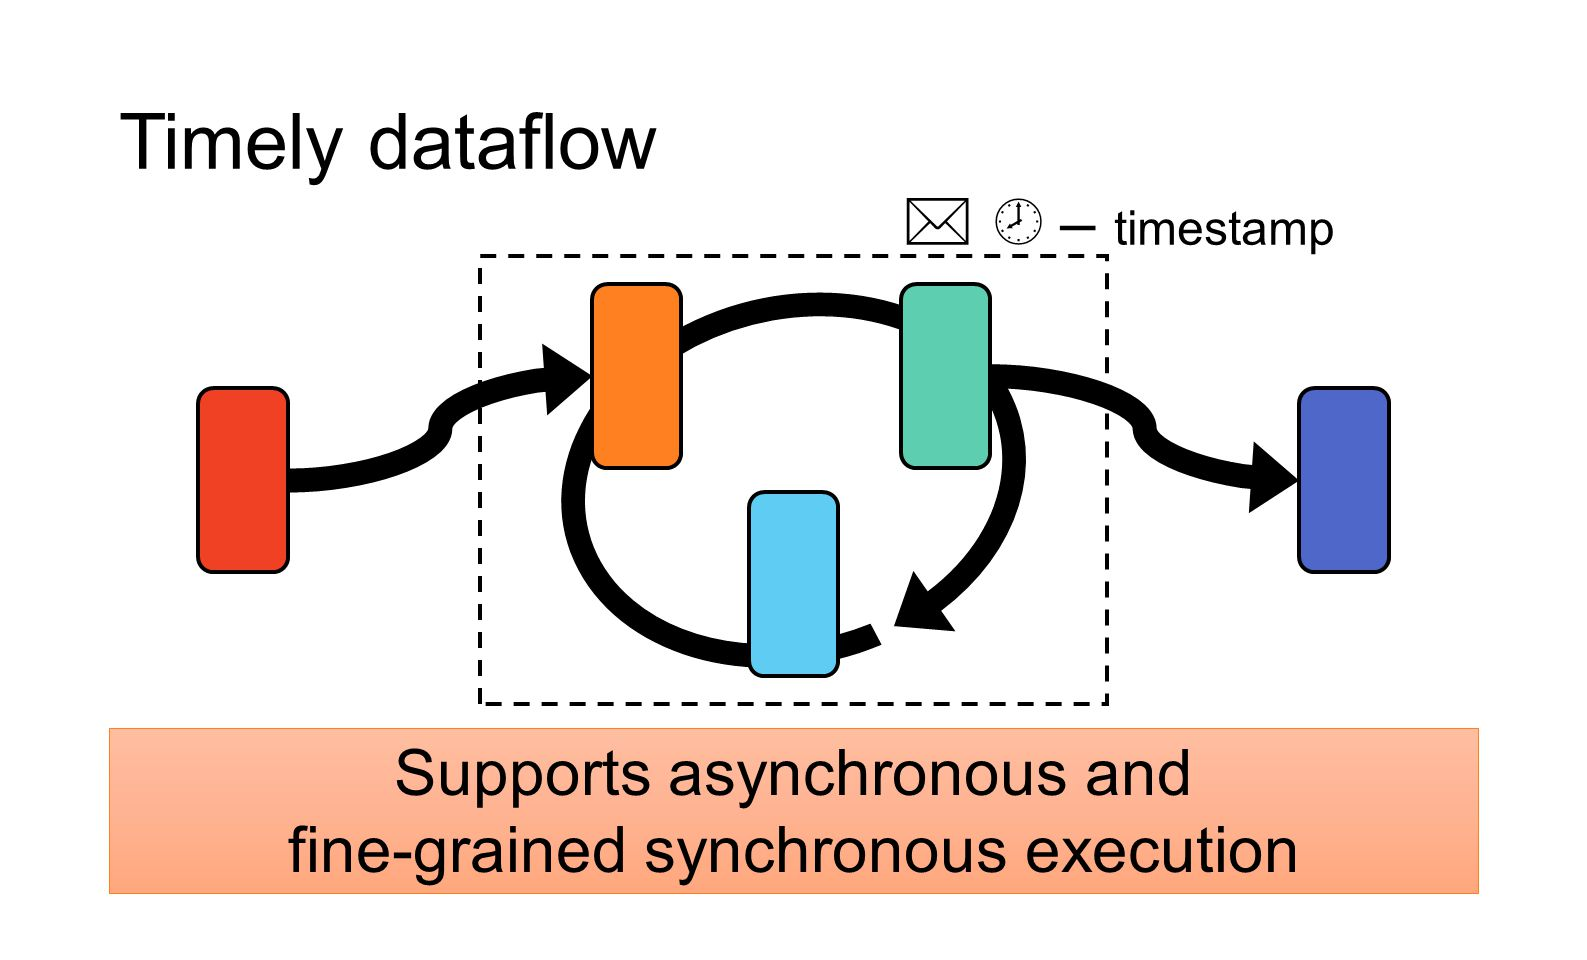 Timely dataflow Supports asynchronous and fine-grained synchronous execution   – timestamp